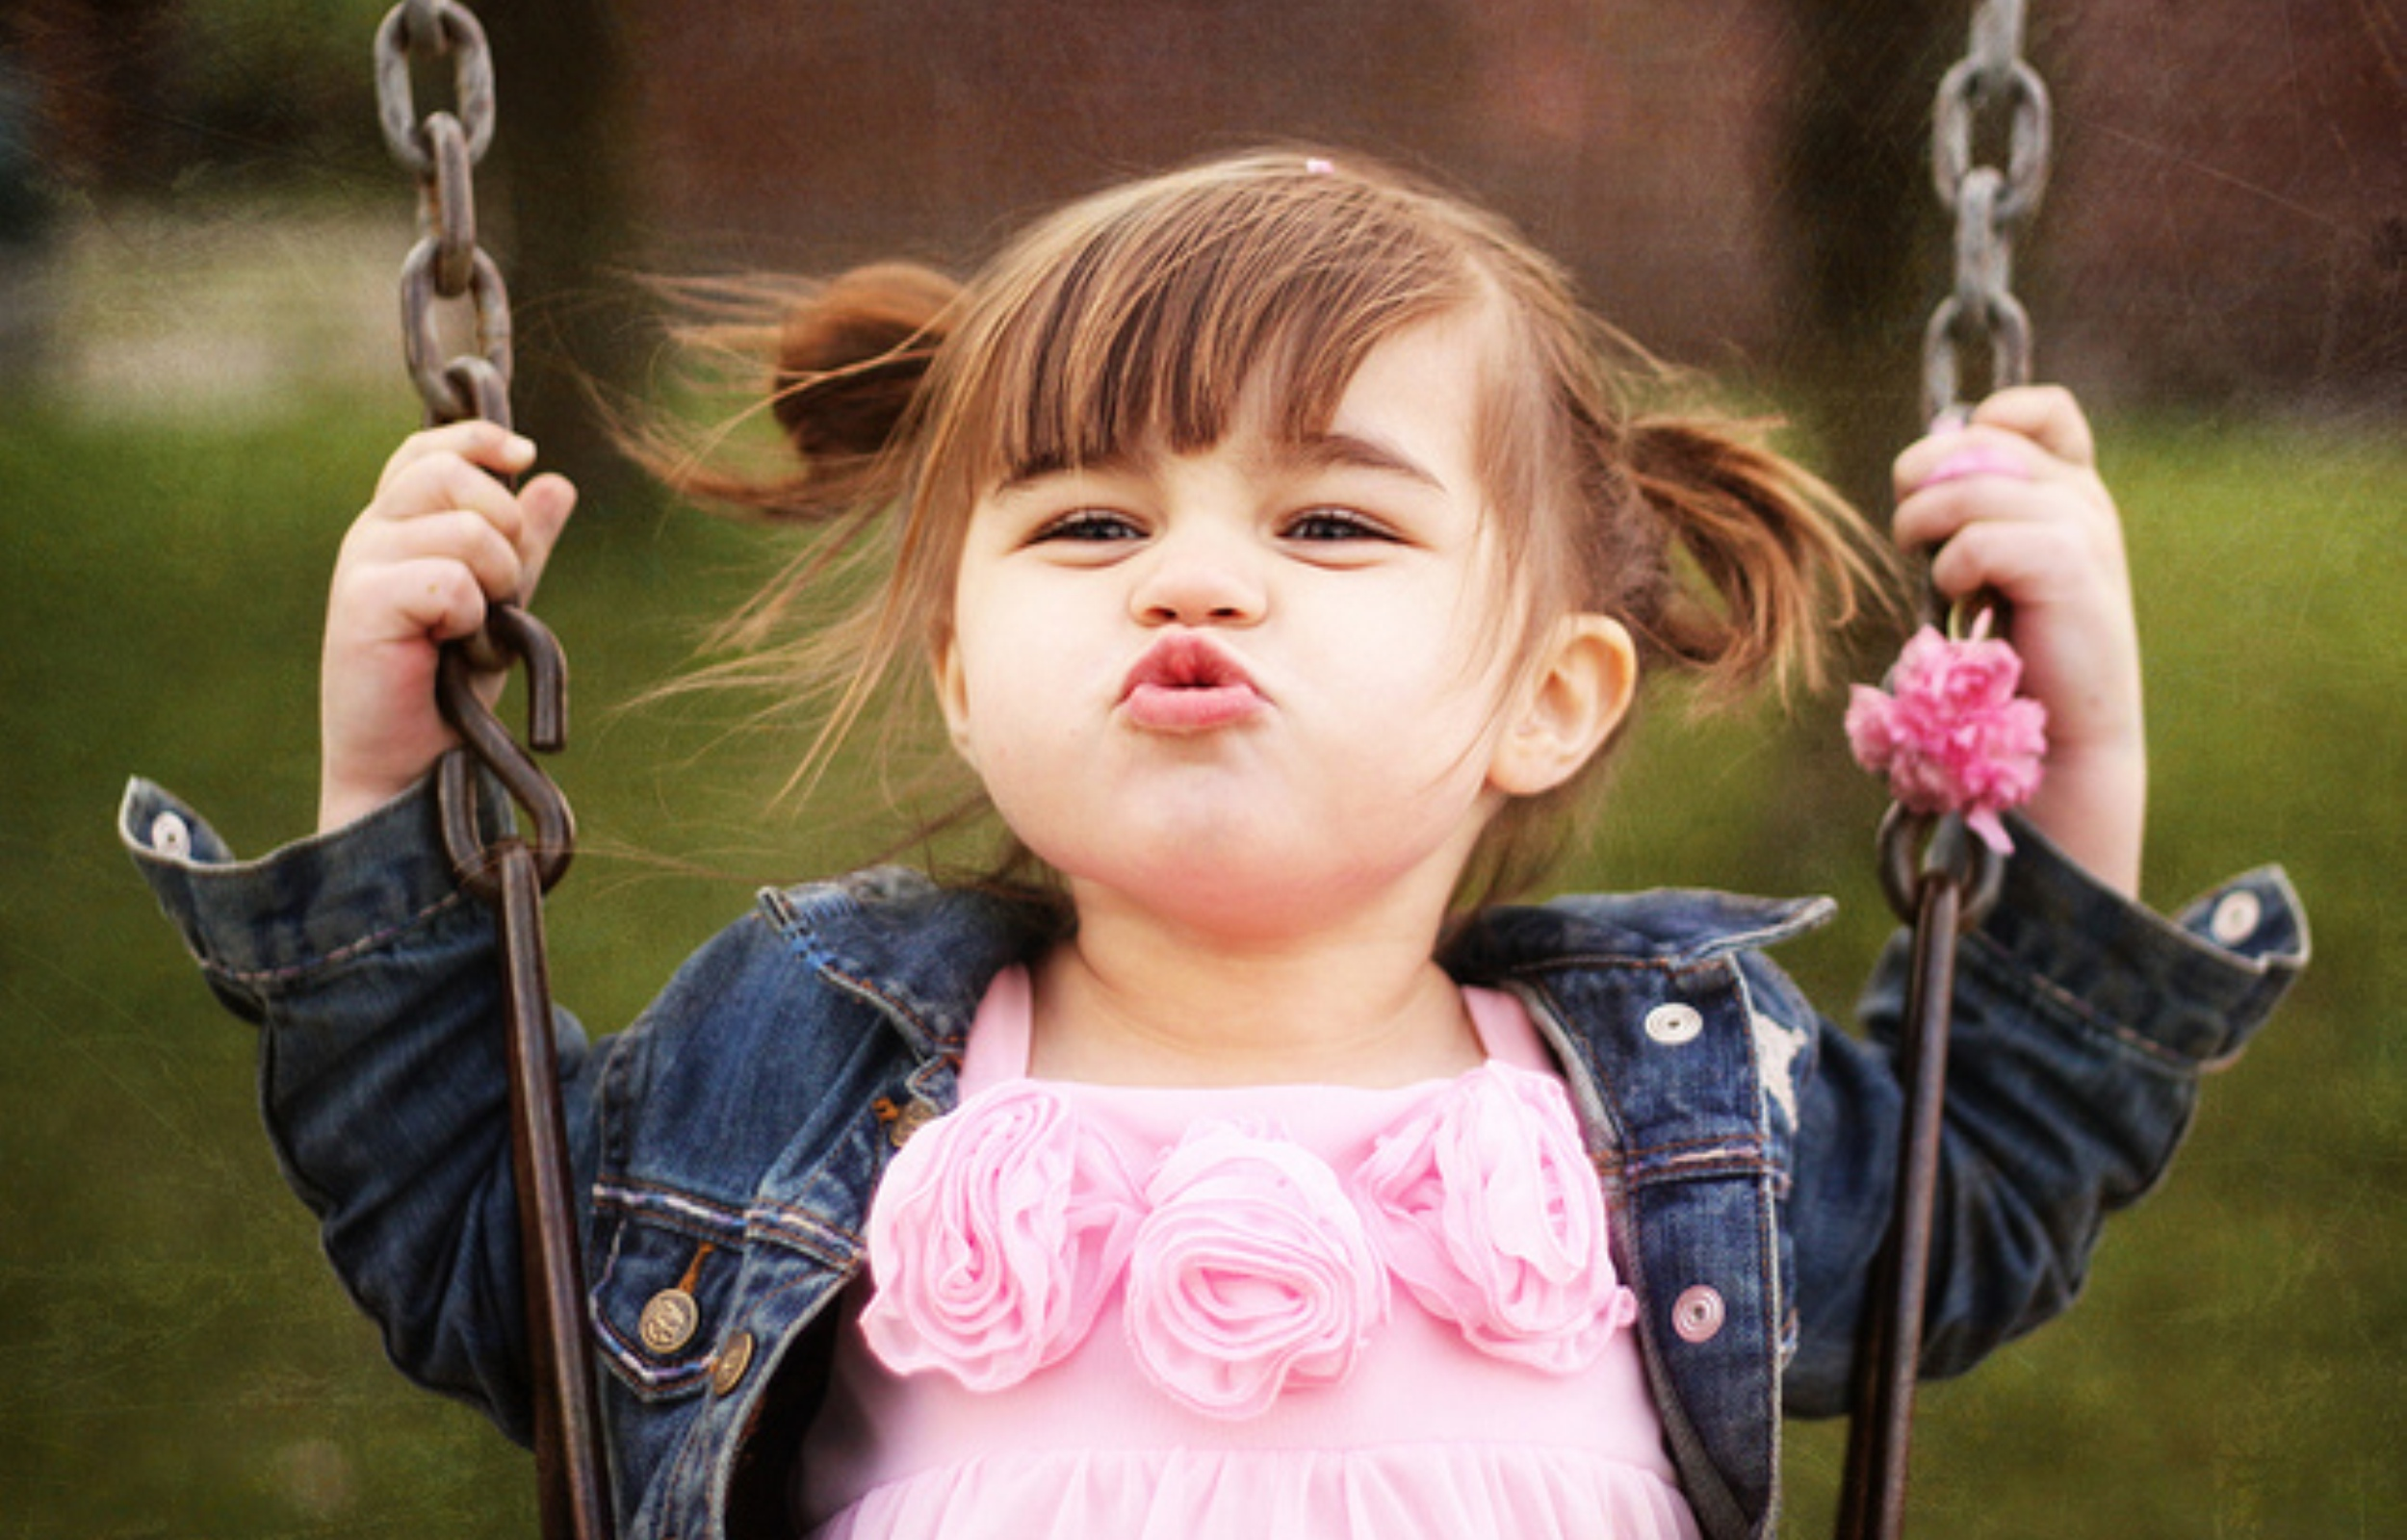 Cute Baby Baby Girl Cute Smileing Flying Kiss – Latest HD Wallpaper Wallpaper